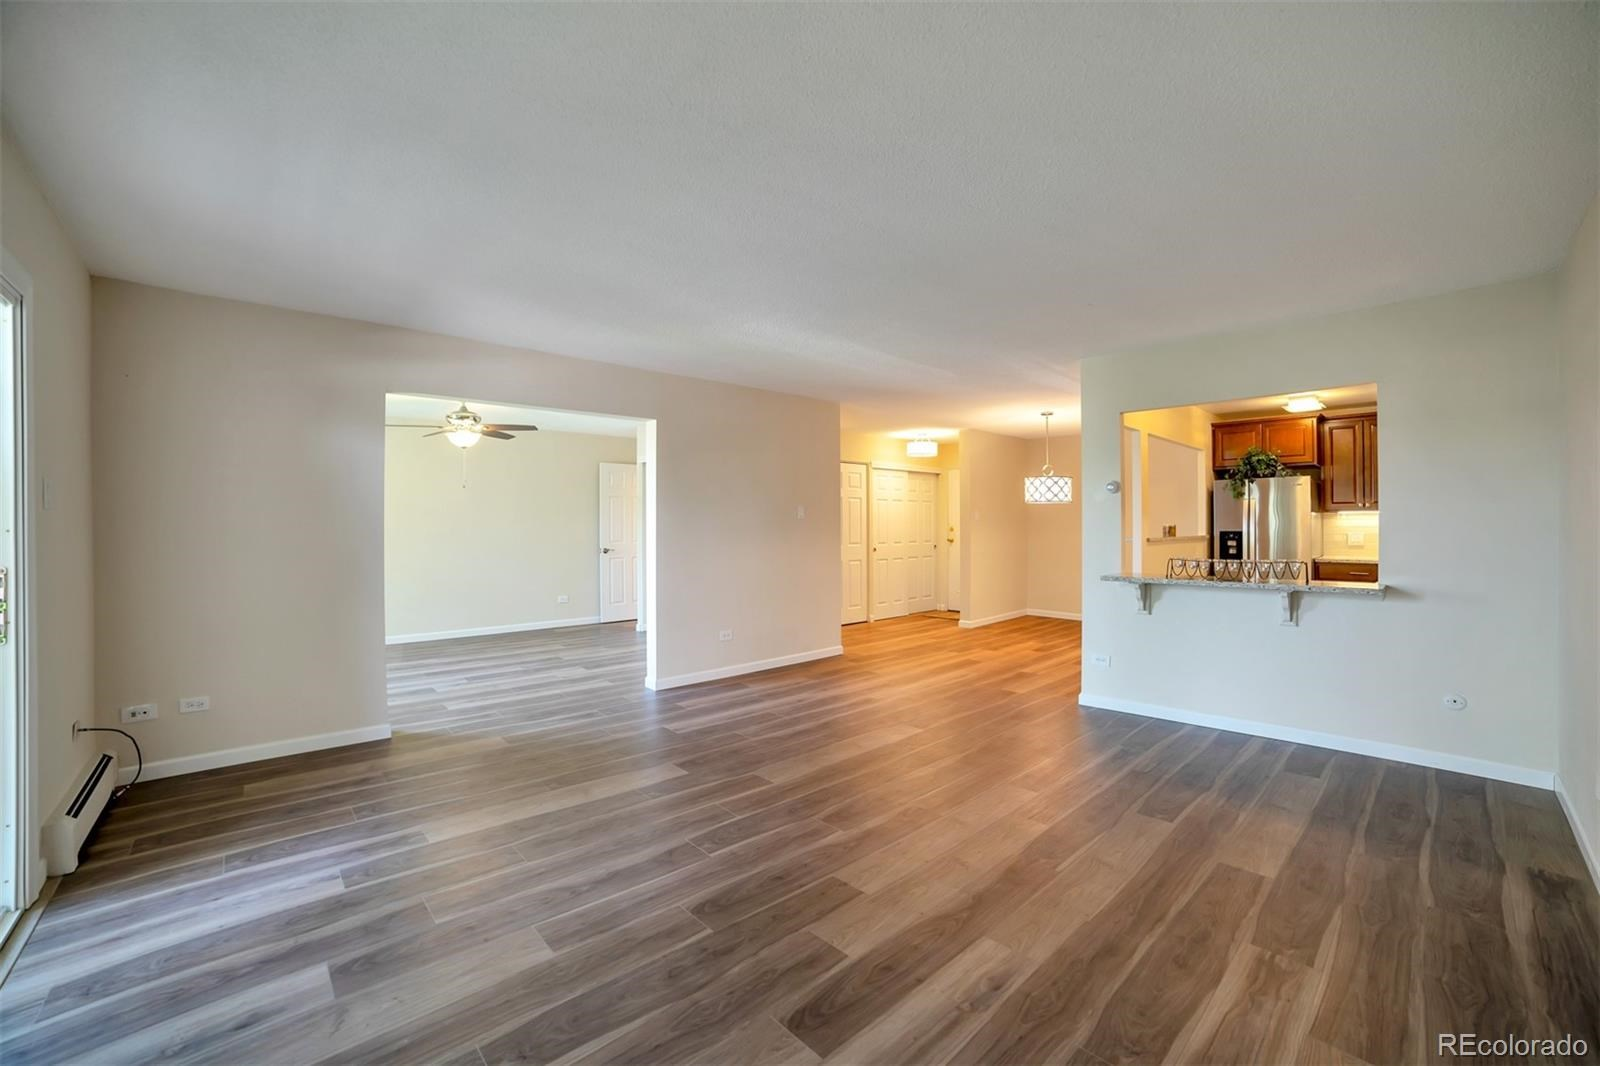 MLS# 7079914 - 5 - 645 S Alton Way #3C, Denver, CO 80247